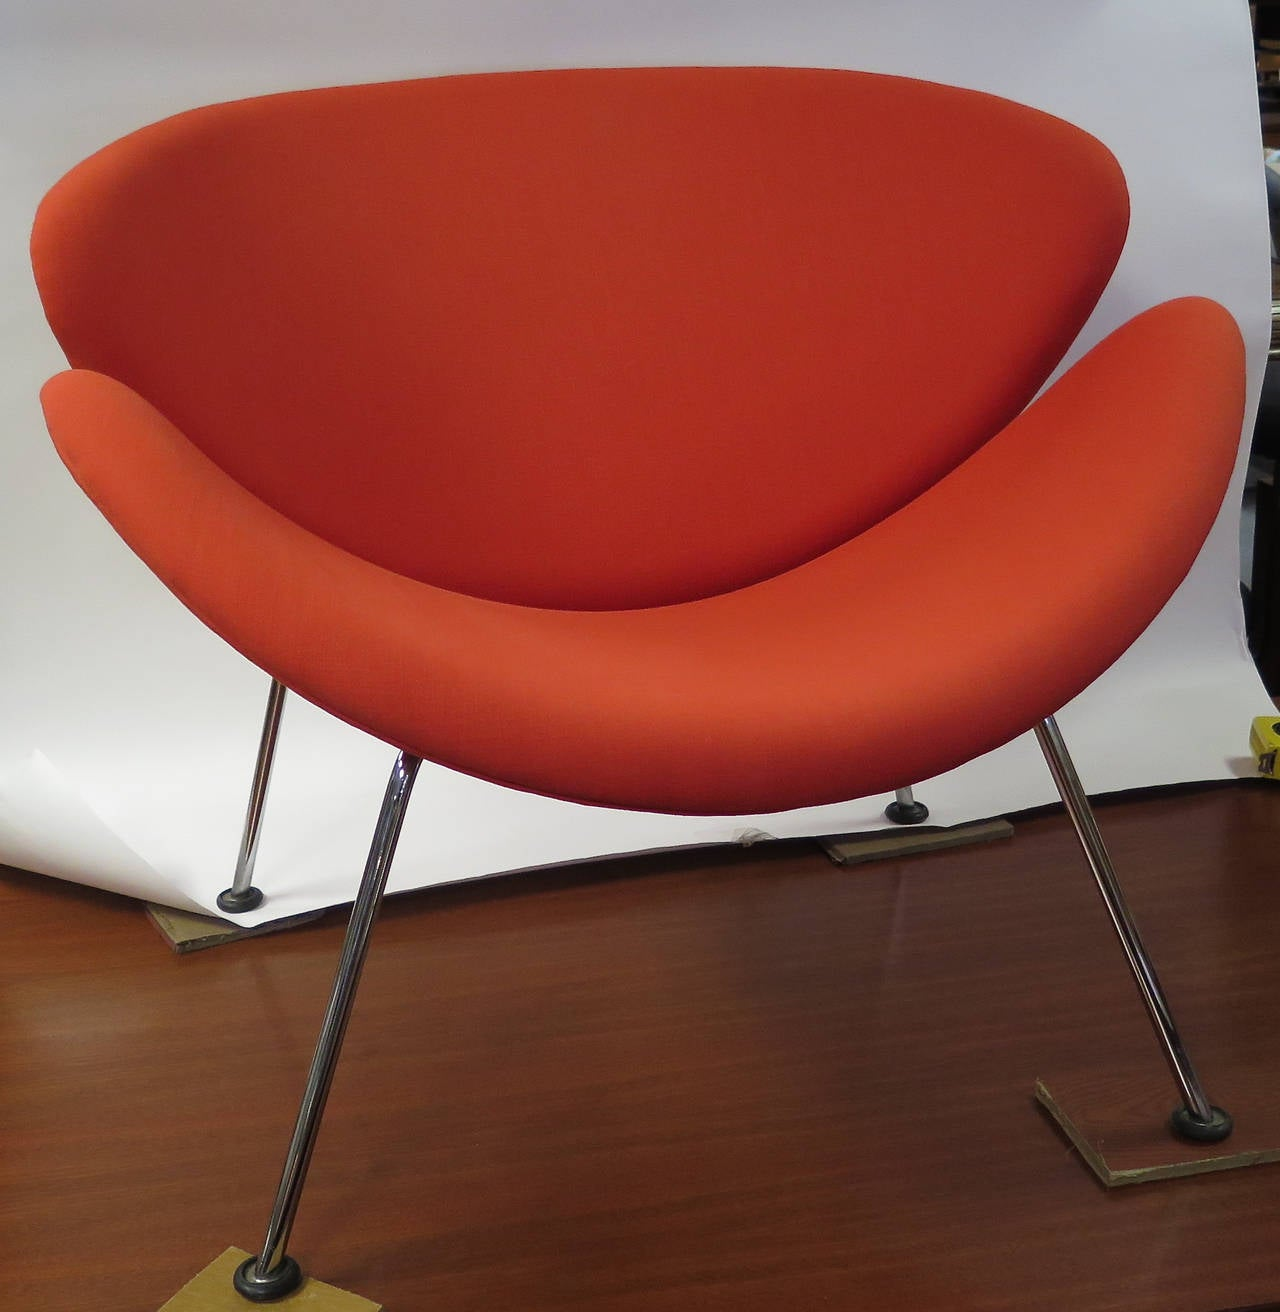 Vibrant 1960s Pierre Paulin For Artifort Orange Slice